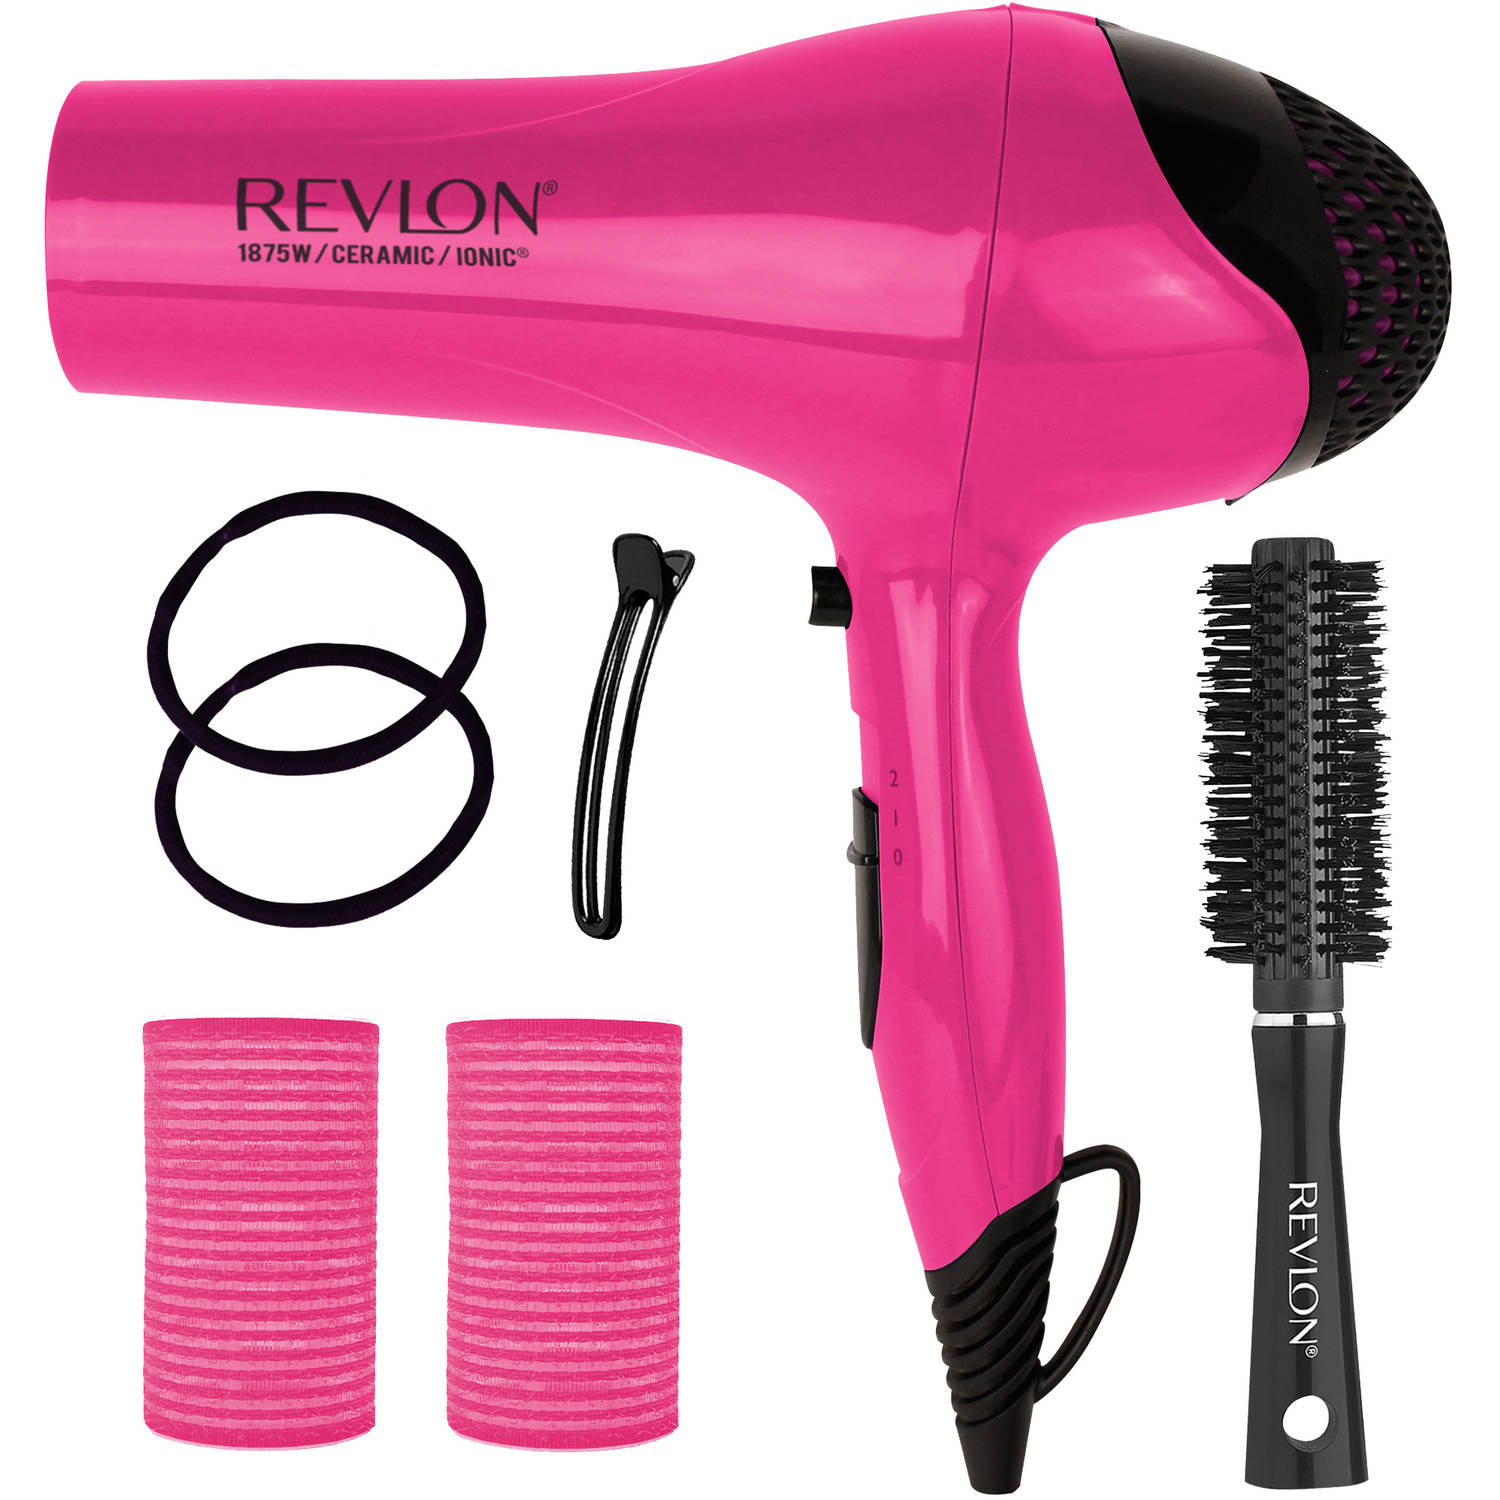 Revlon Ceramic Ionic Dryer Blowout Gift Set, Pink, 7 pc